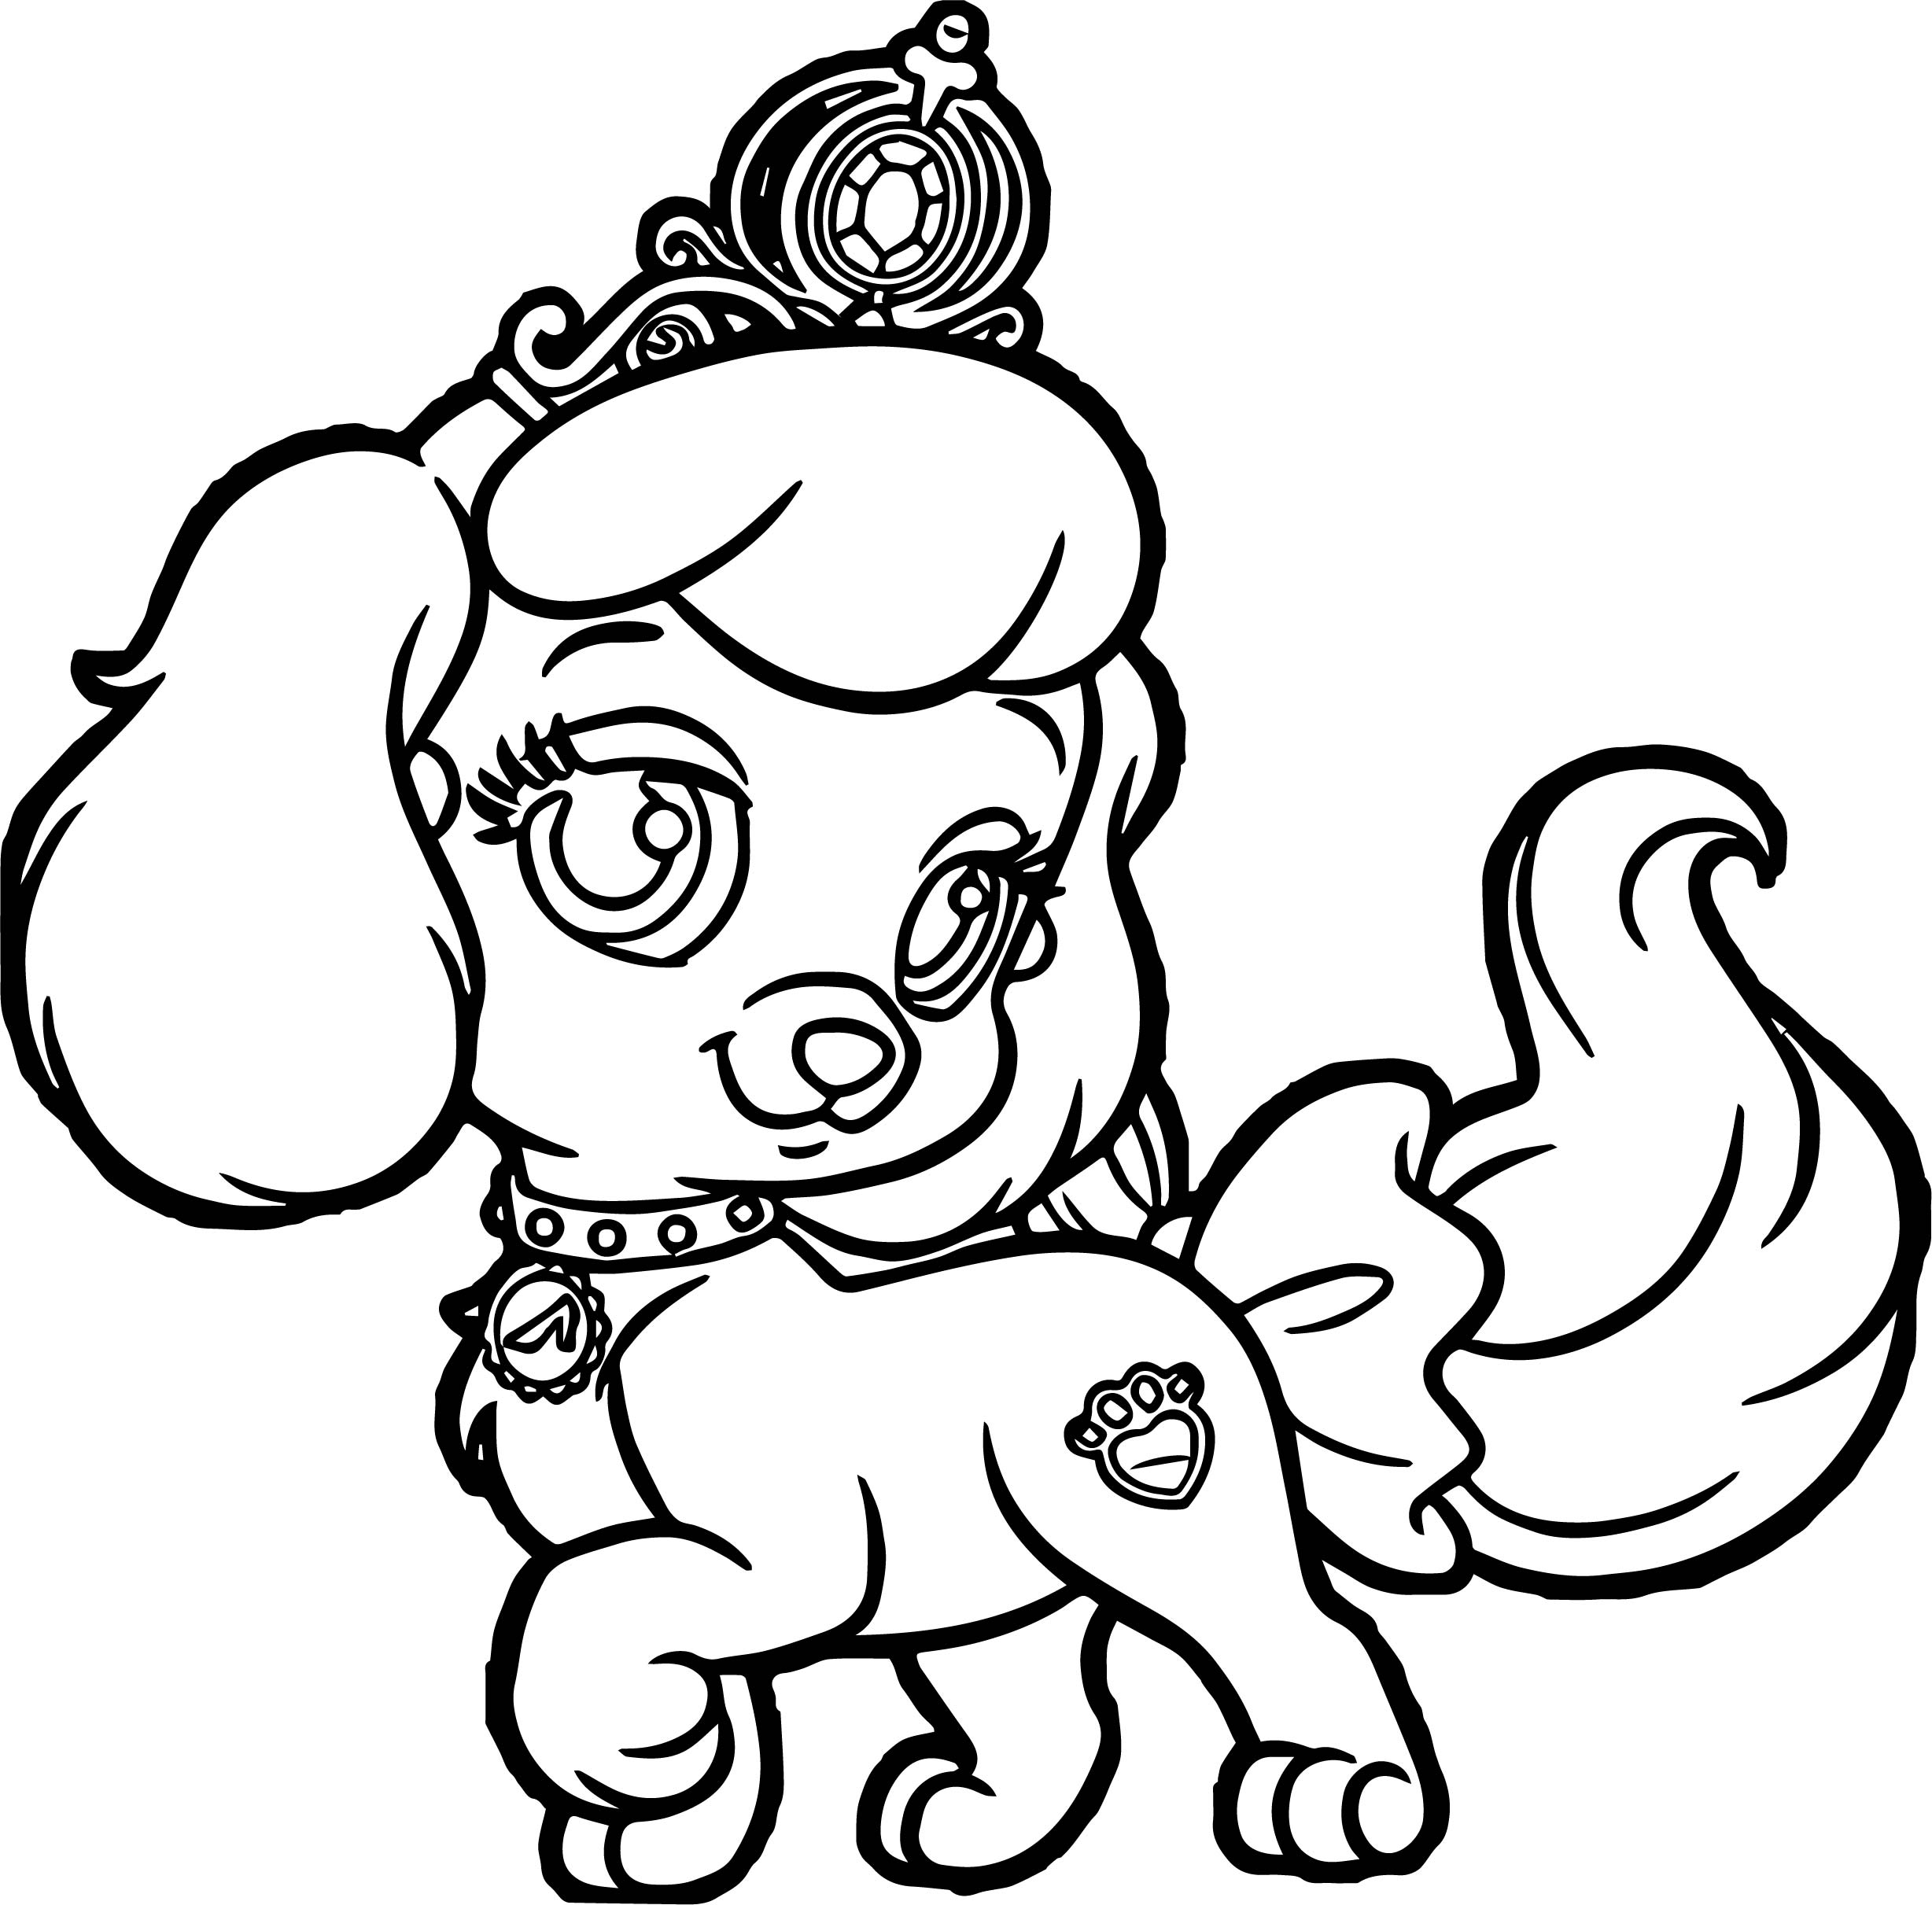 kids dog coloring pages dog to download for free dogs kids coloring pages pages dog coloring kids